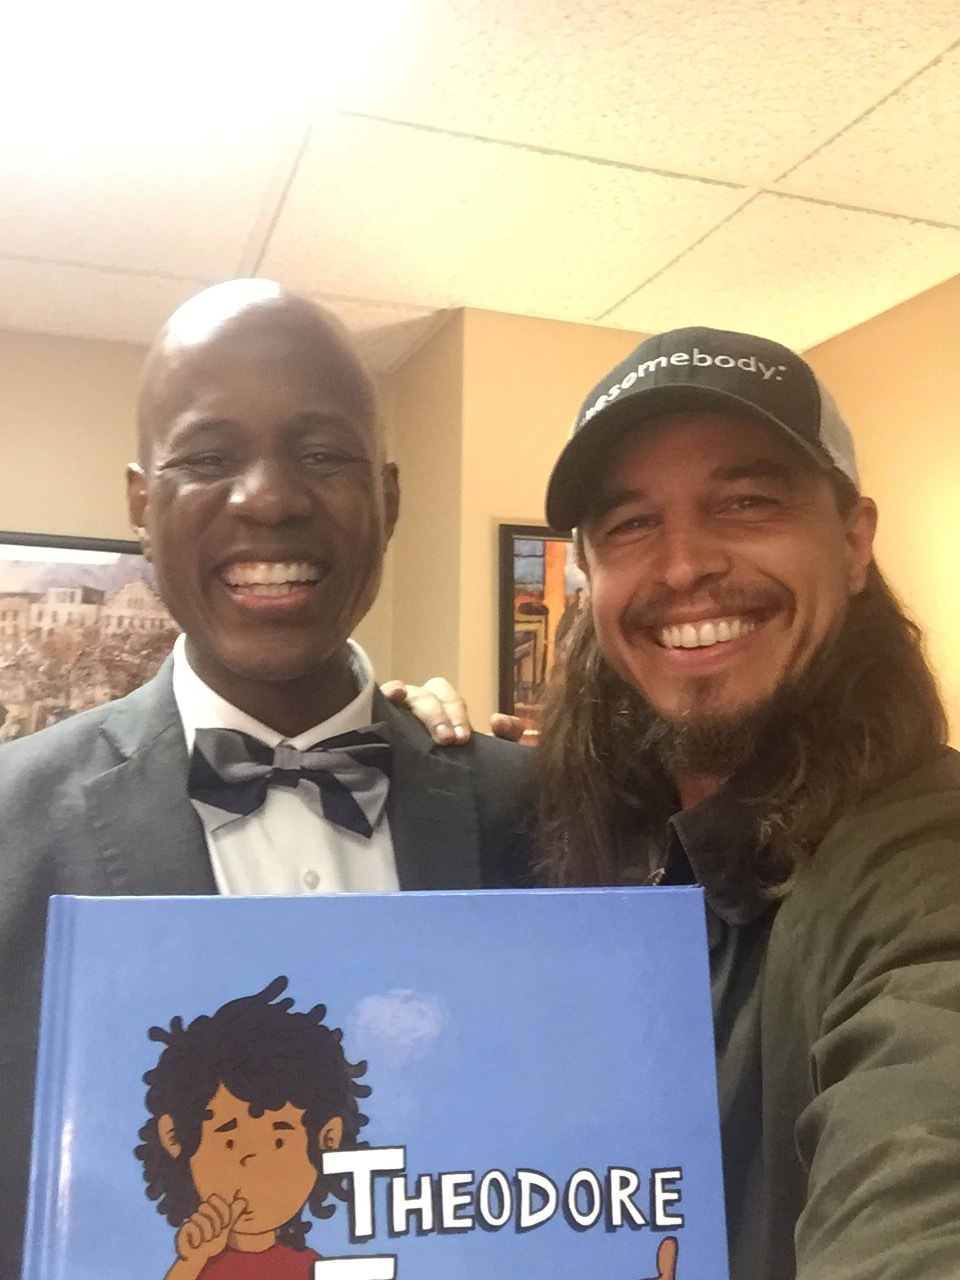 My old college English teacher, the famous Stephen Moore. He recently published a children's book about bullying called Theodore Thumbs. You can check it out and/or buy it here: https://www.clearforkpublishing.com/our-store/theodore-thumbs/